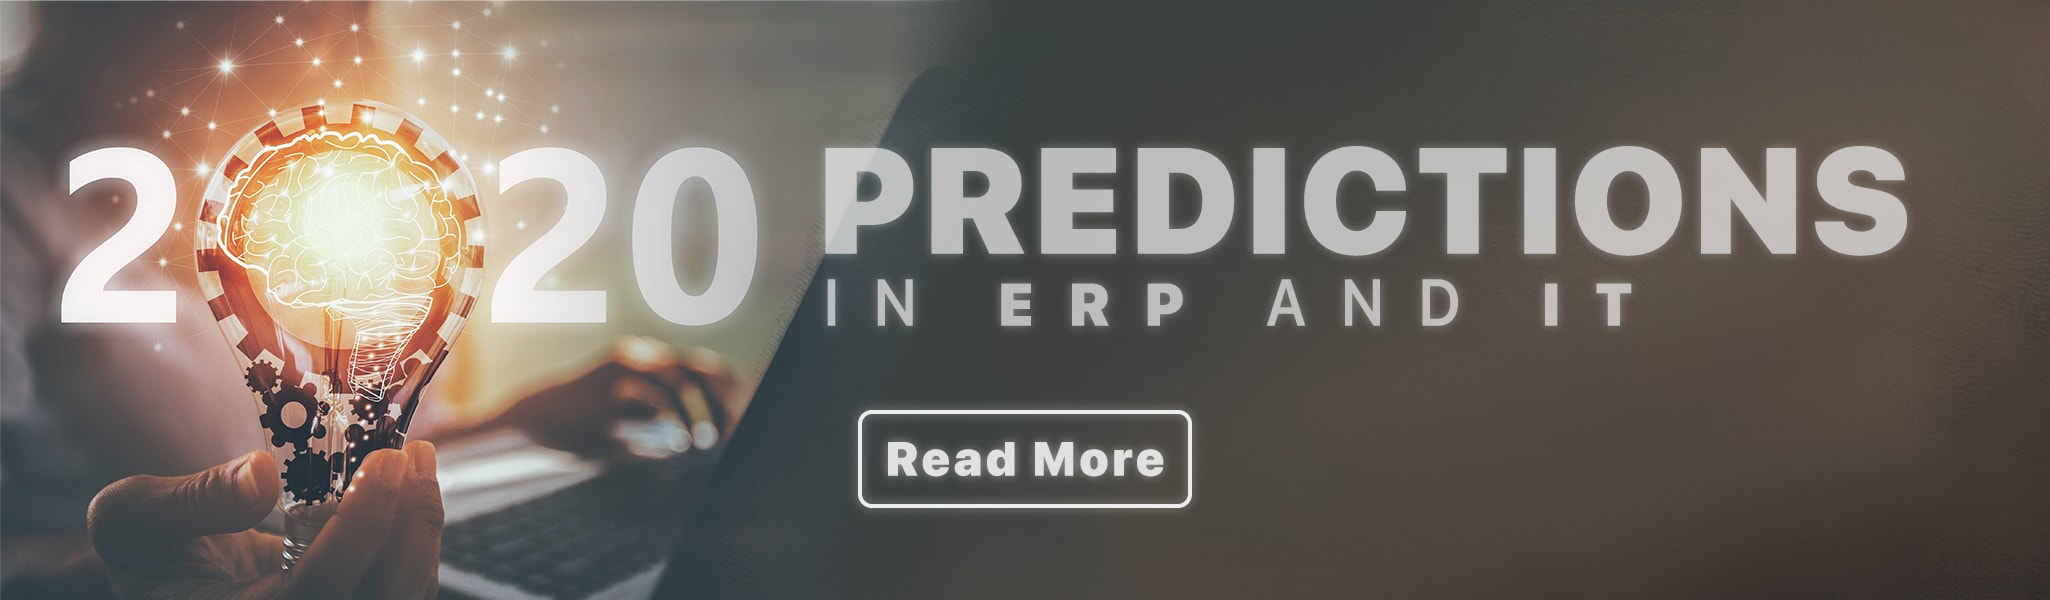 2020 Predictions in ERP and IT